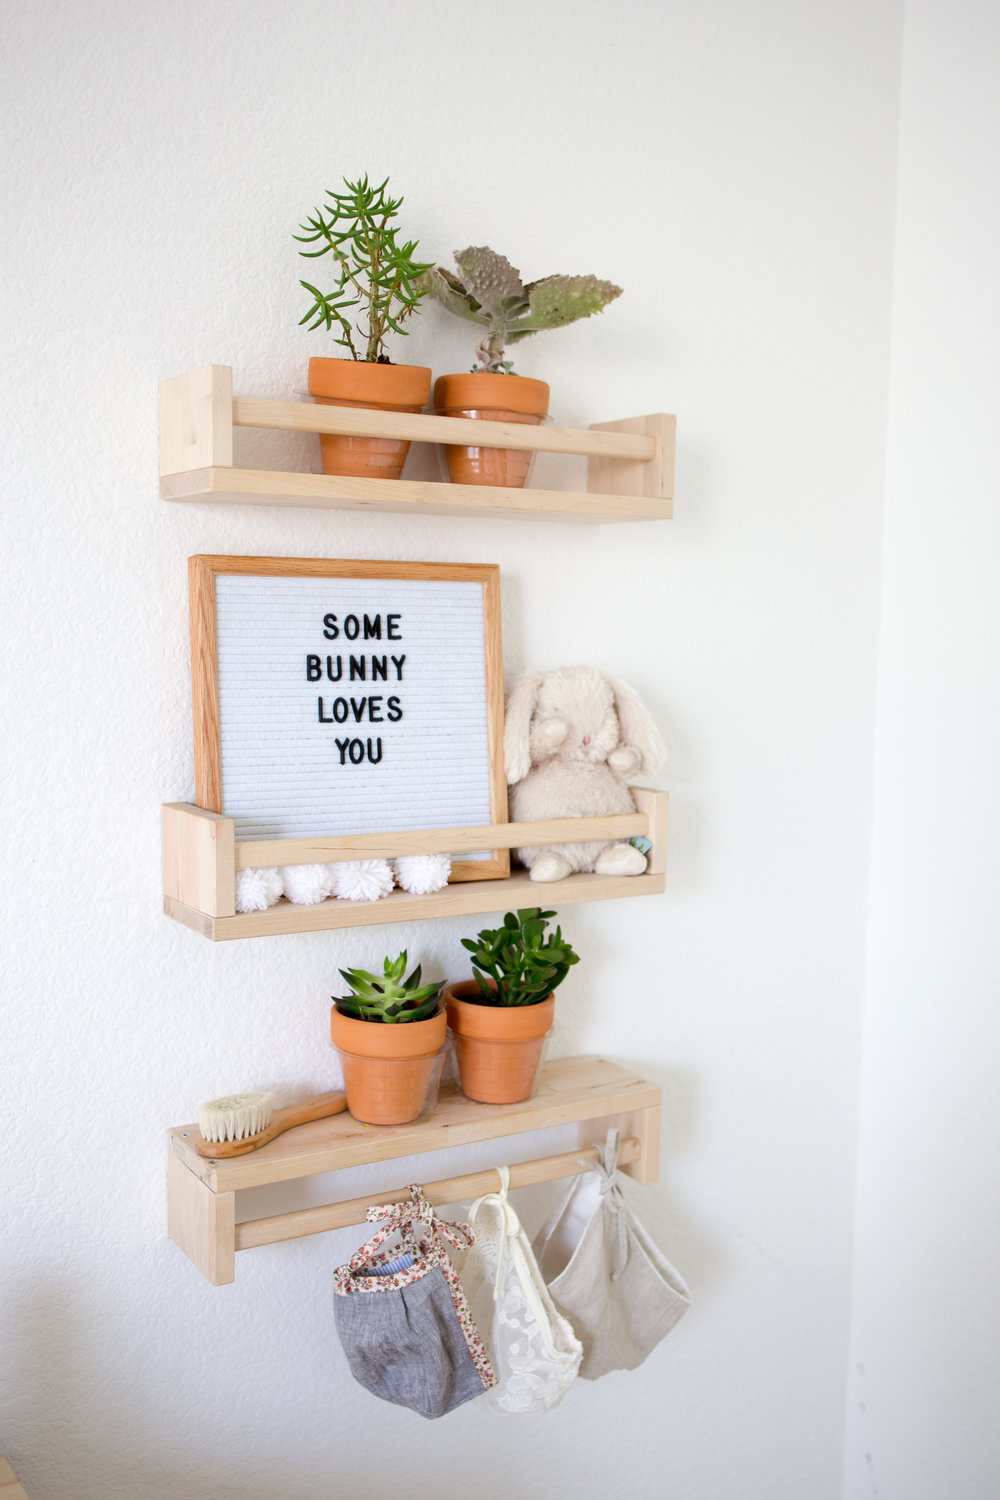 Ikea Bekvam Spice Rack As Shelves In Boho Nursery